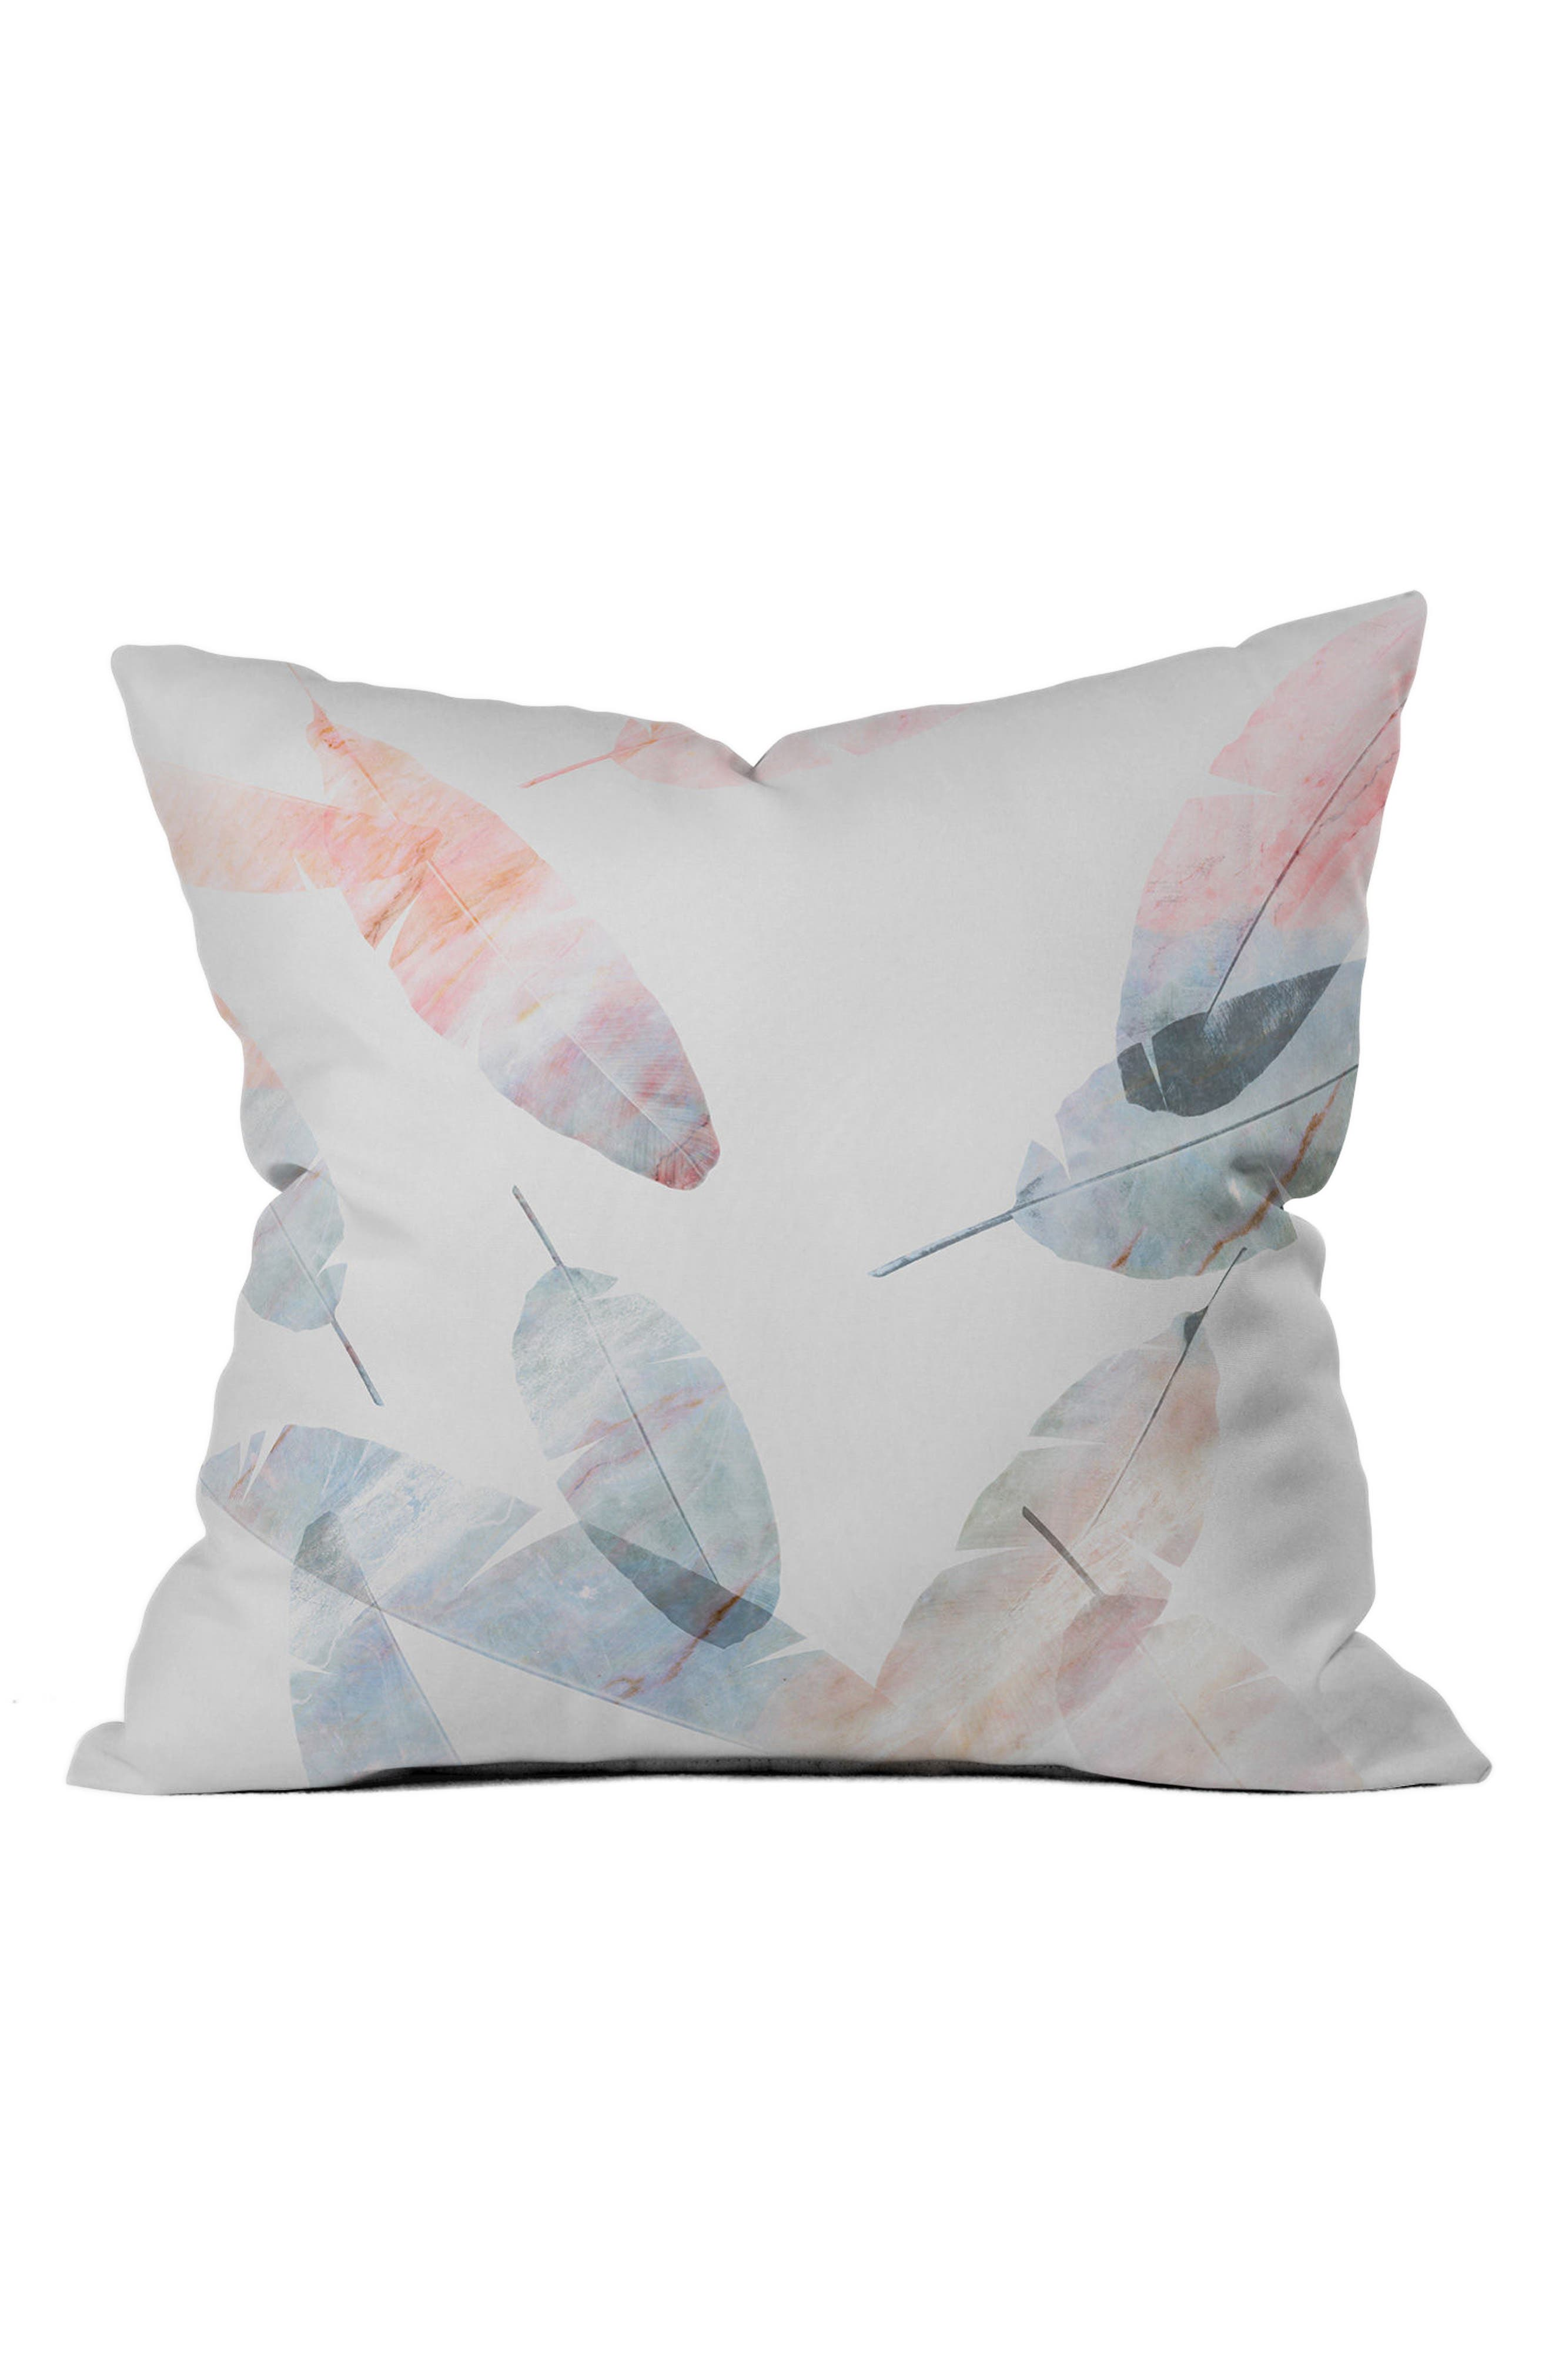 Main Image - DENY Designs Pastel Pillow